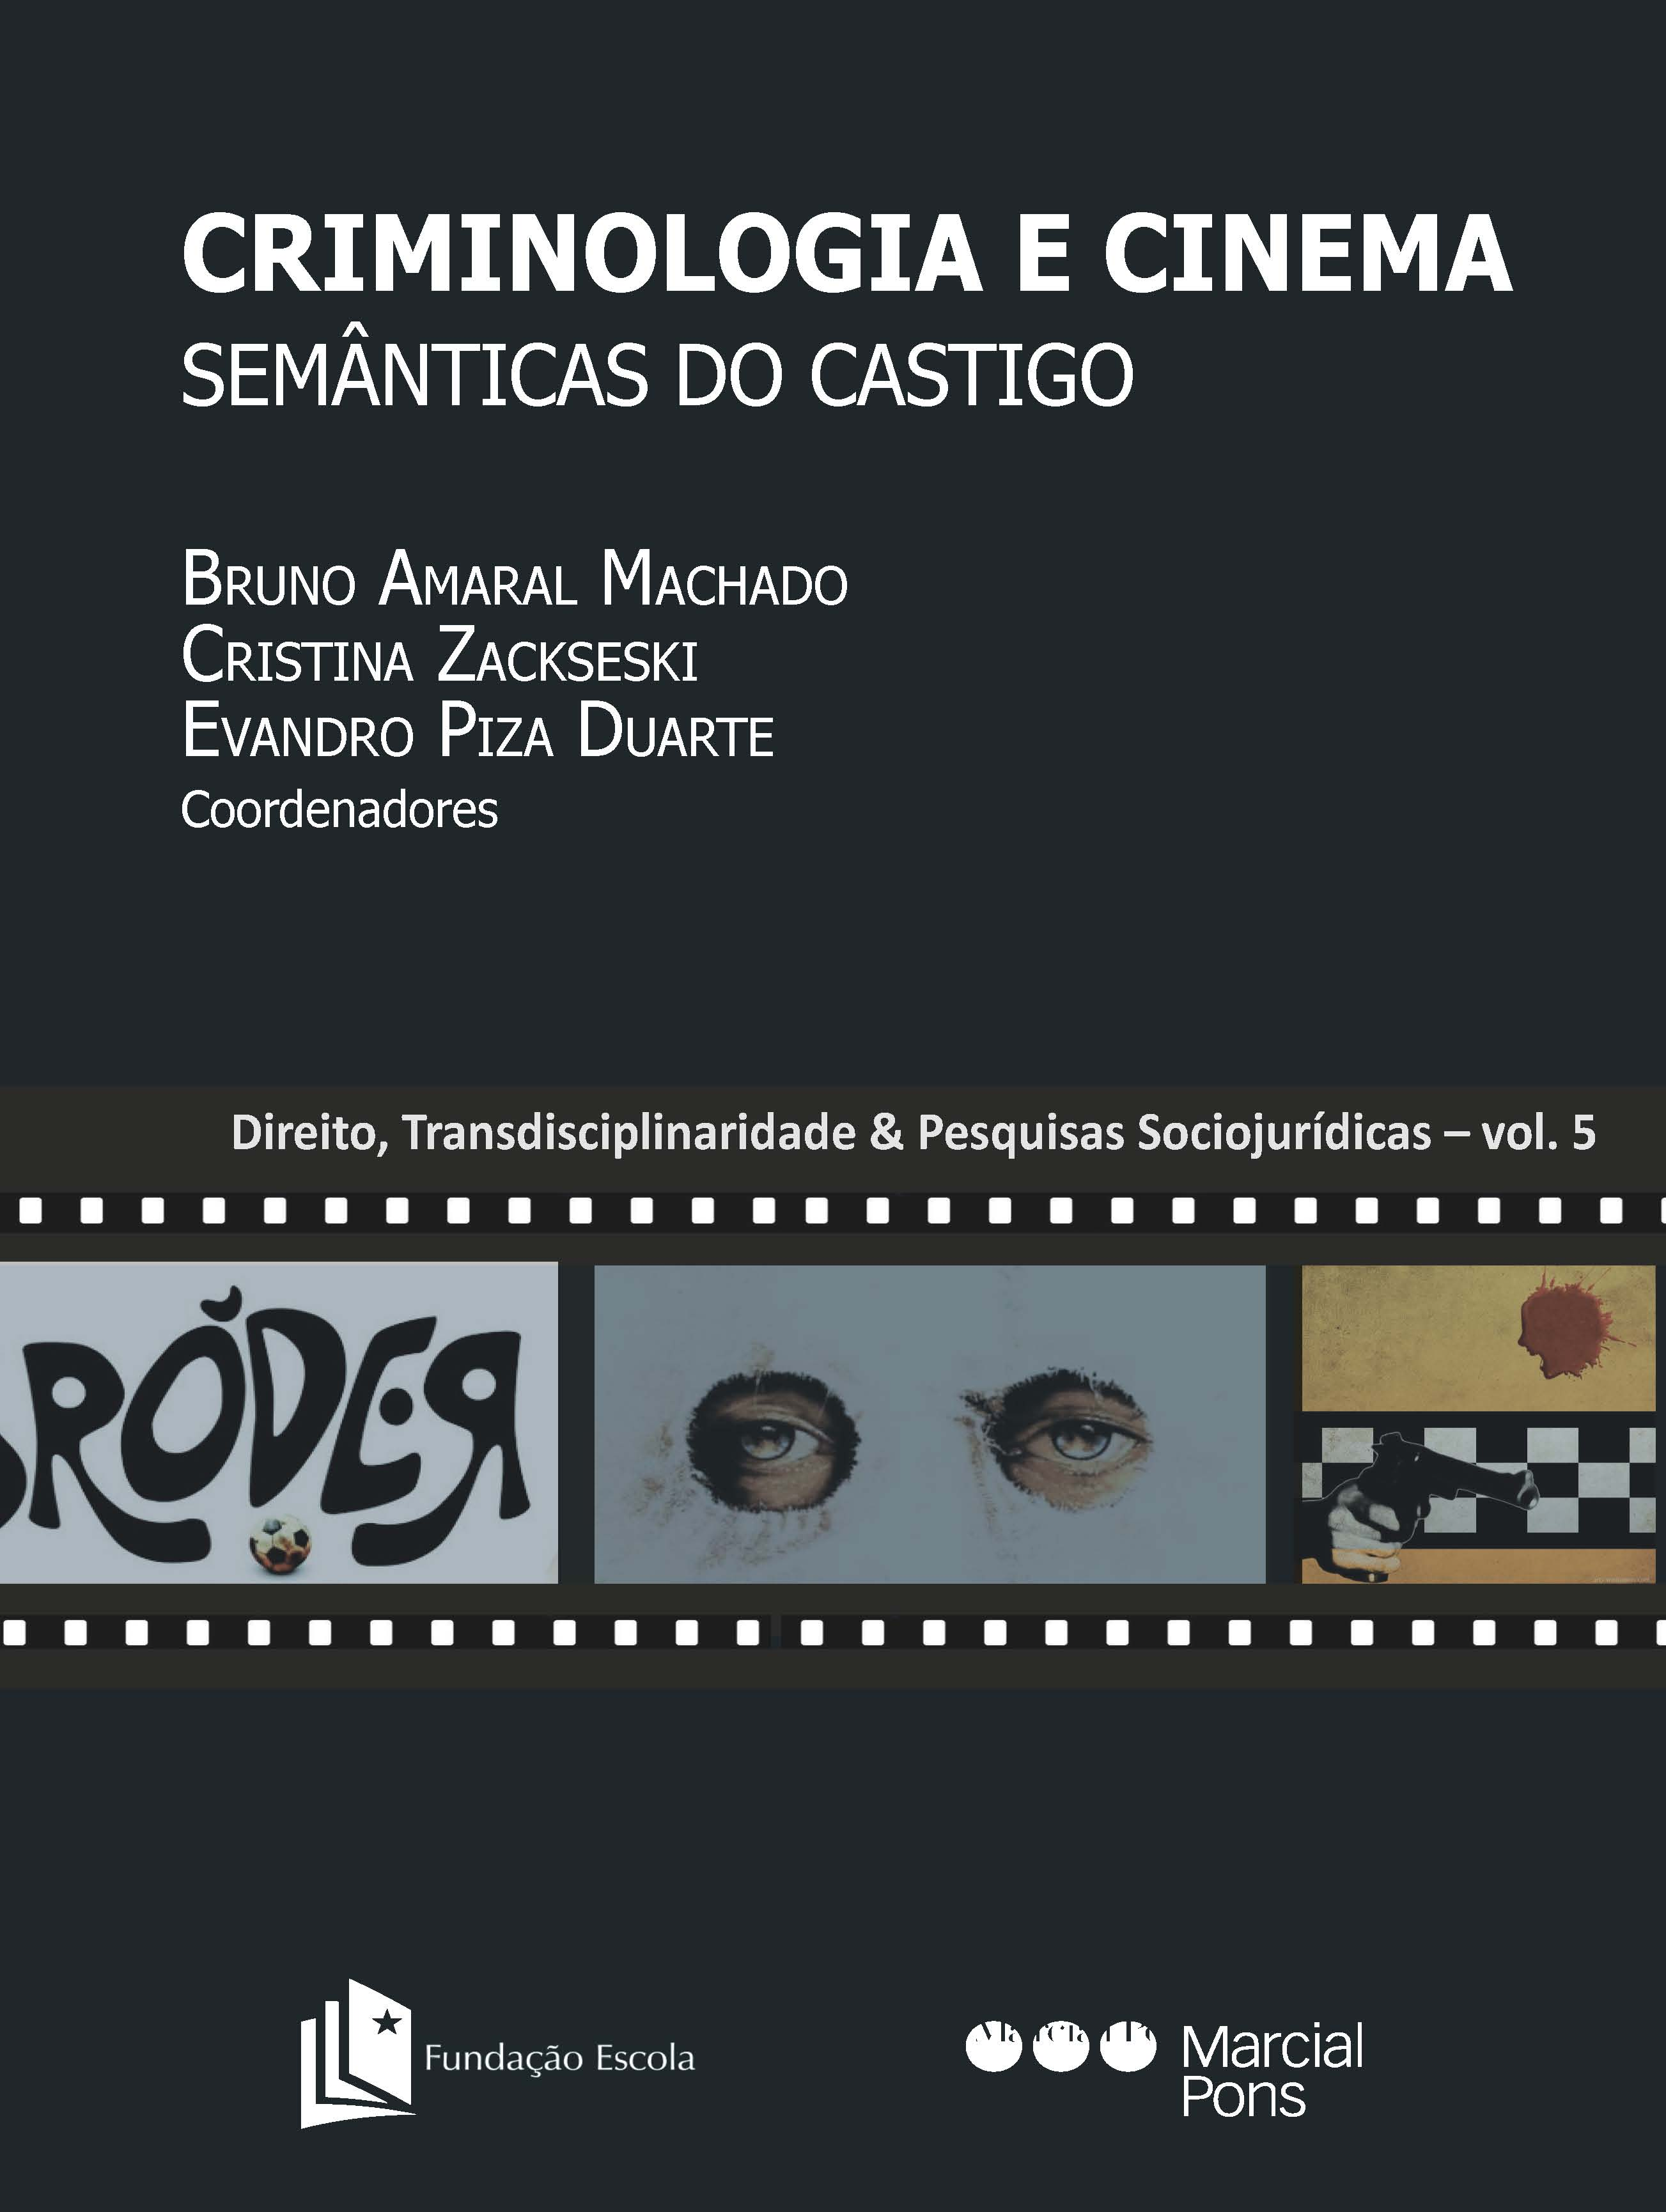 Criminologia e cinema, semânticas do castigo. 9788545572008